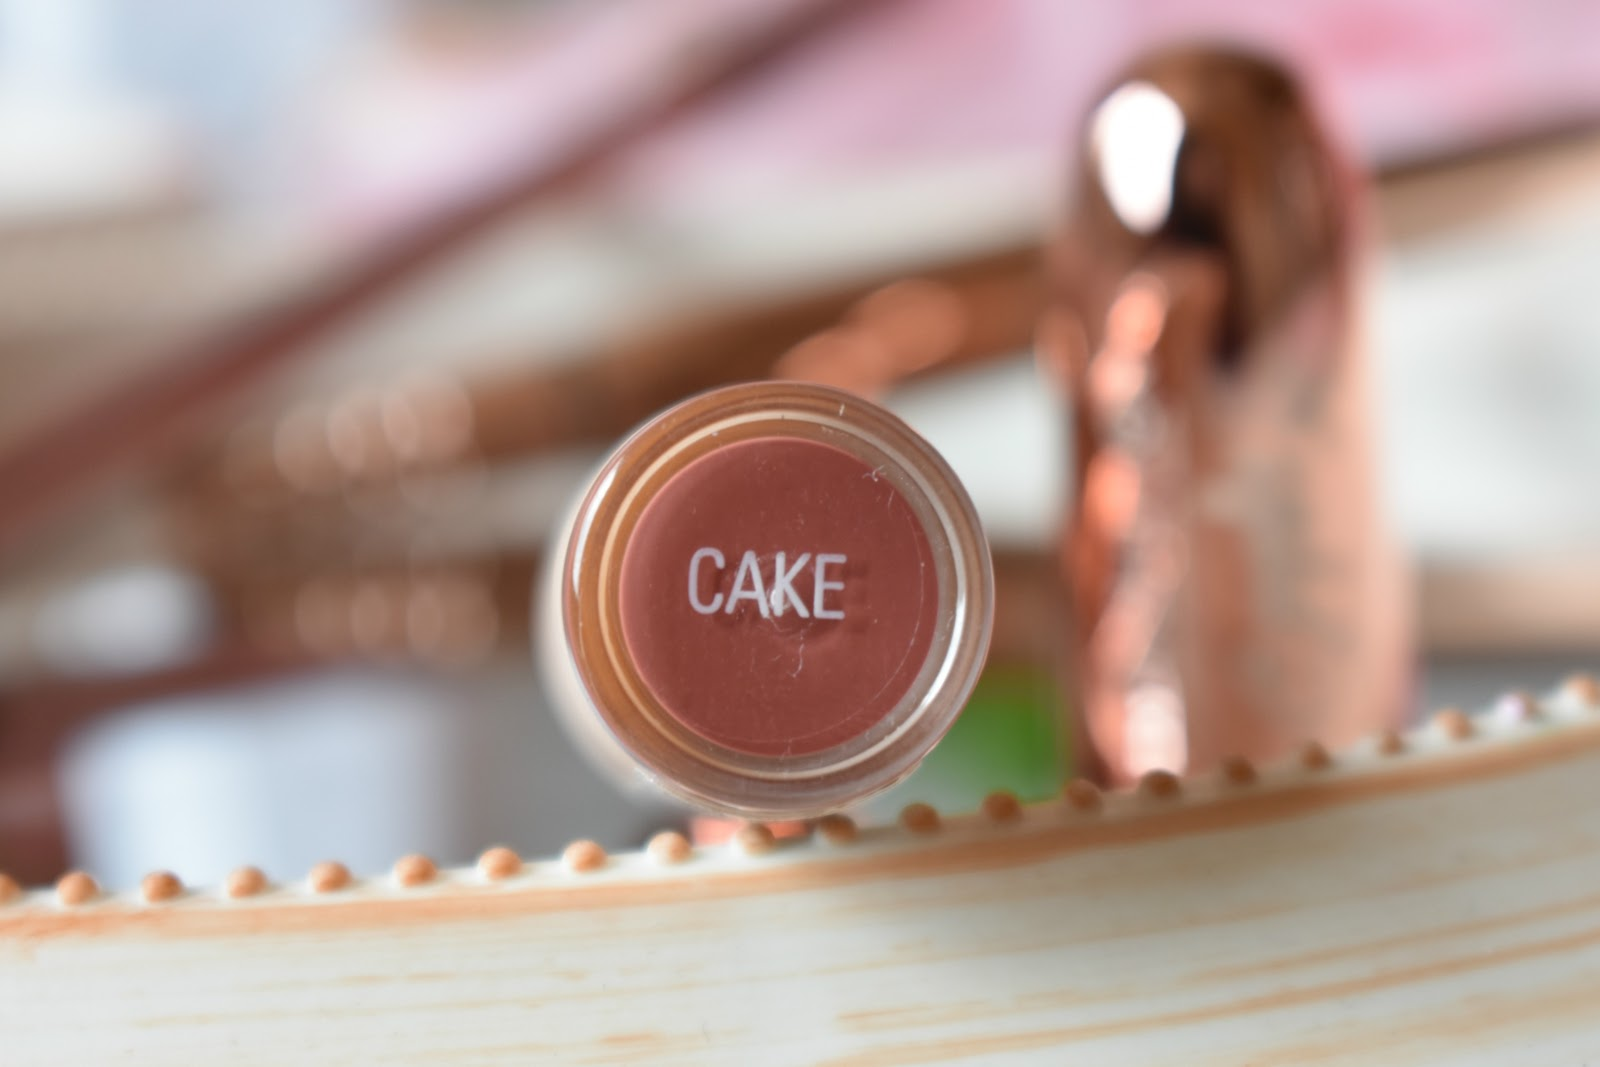 Haysparkle Revolution Soph Nude Lipstick In Cake Reviewed -8255